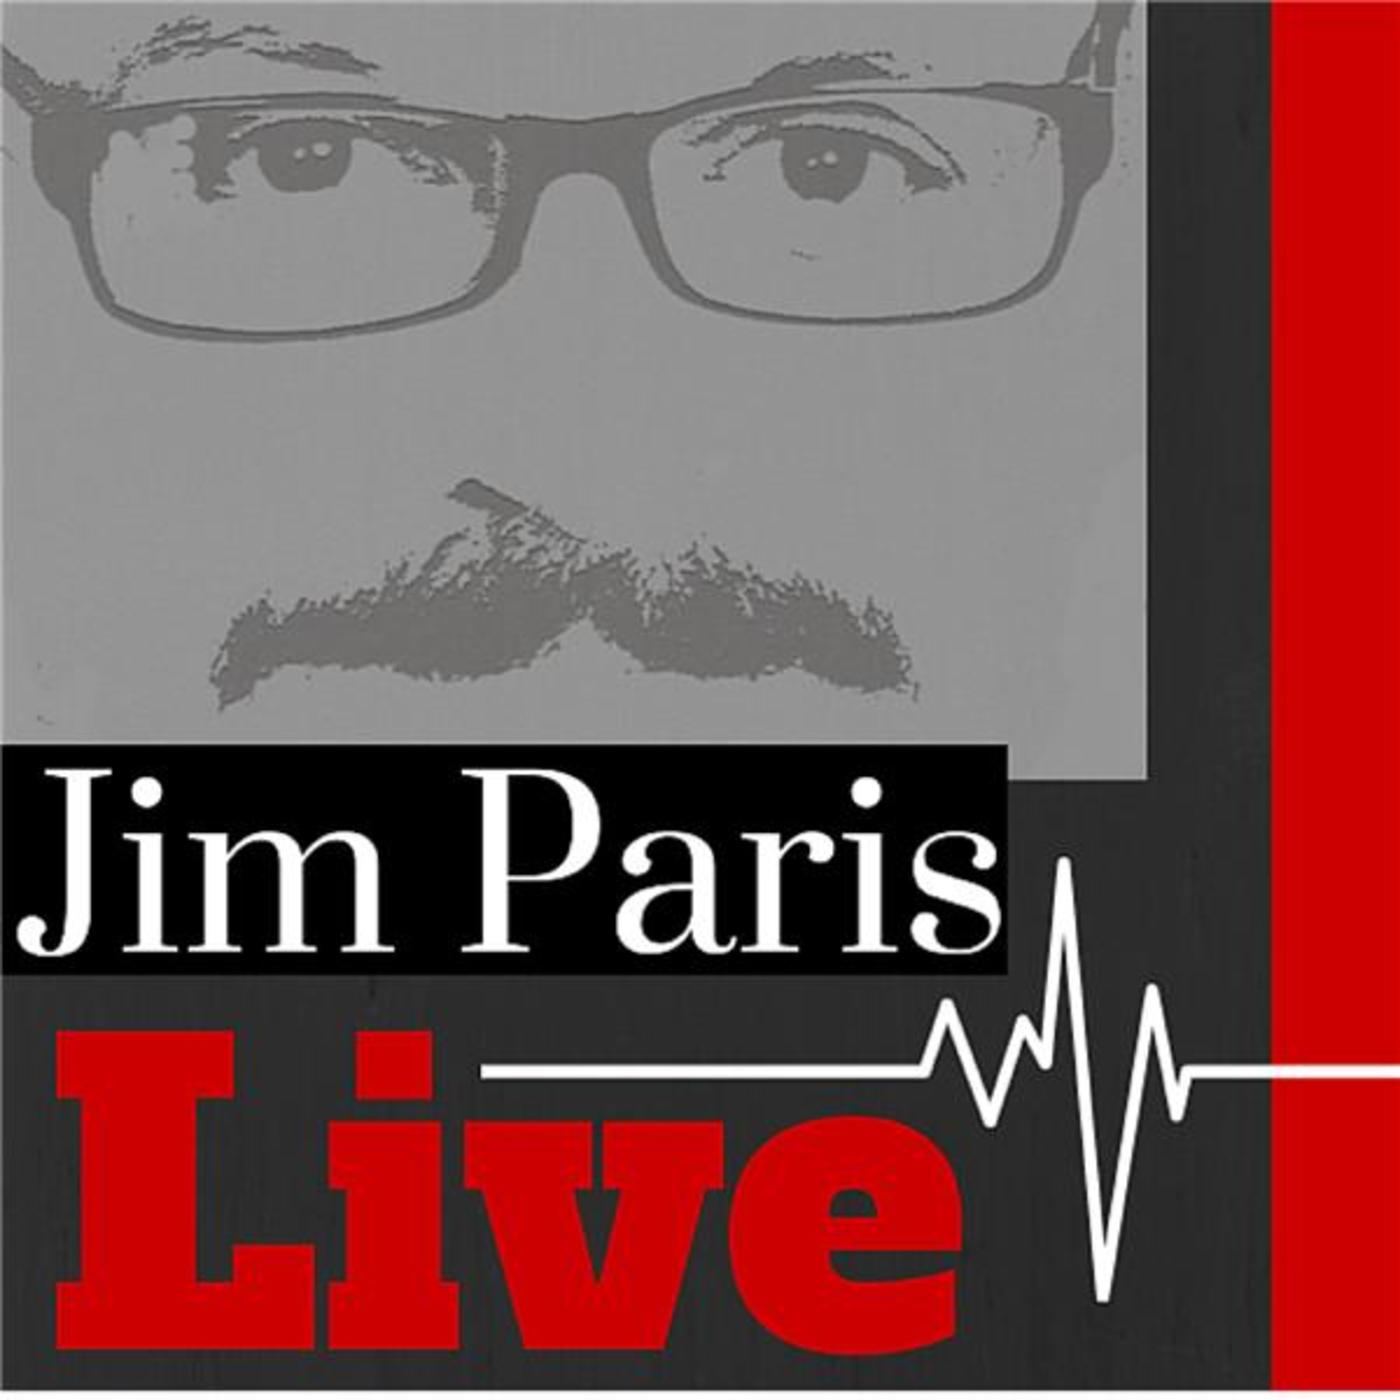 Jim Paris Live (James L. Paris)